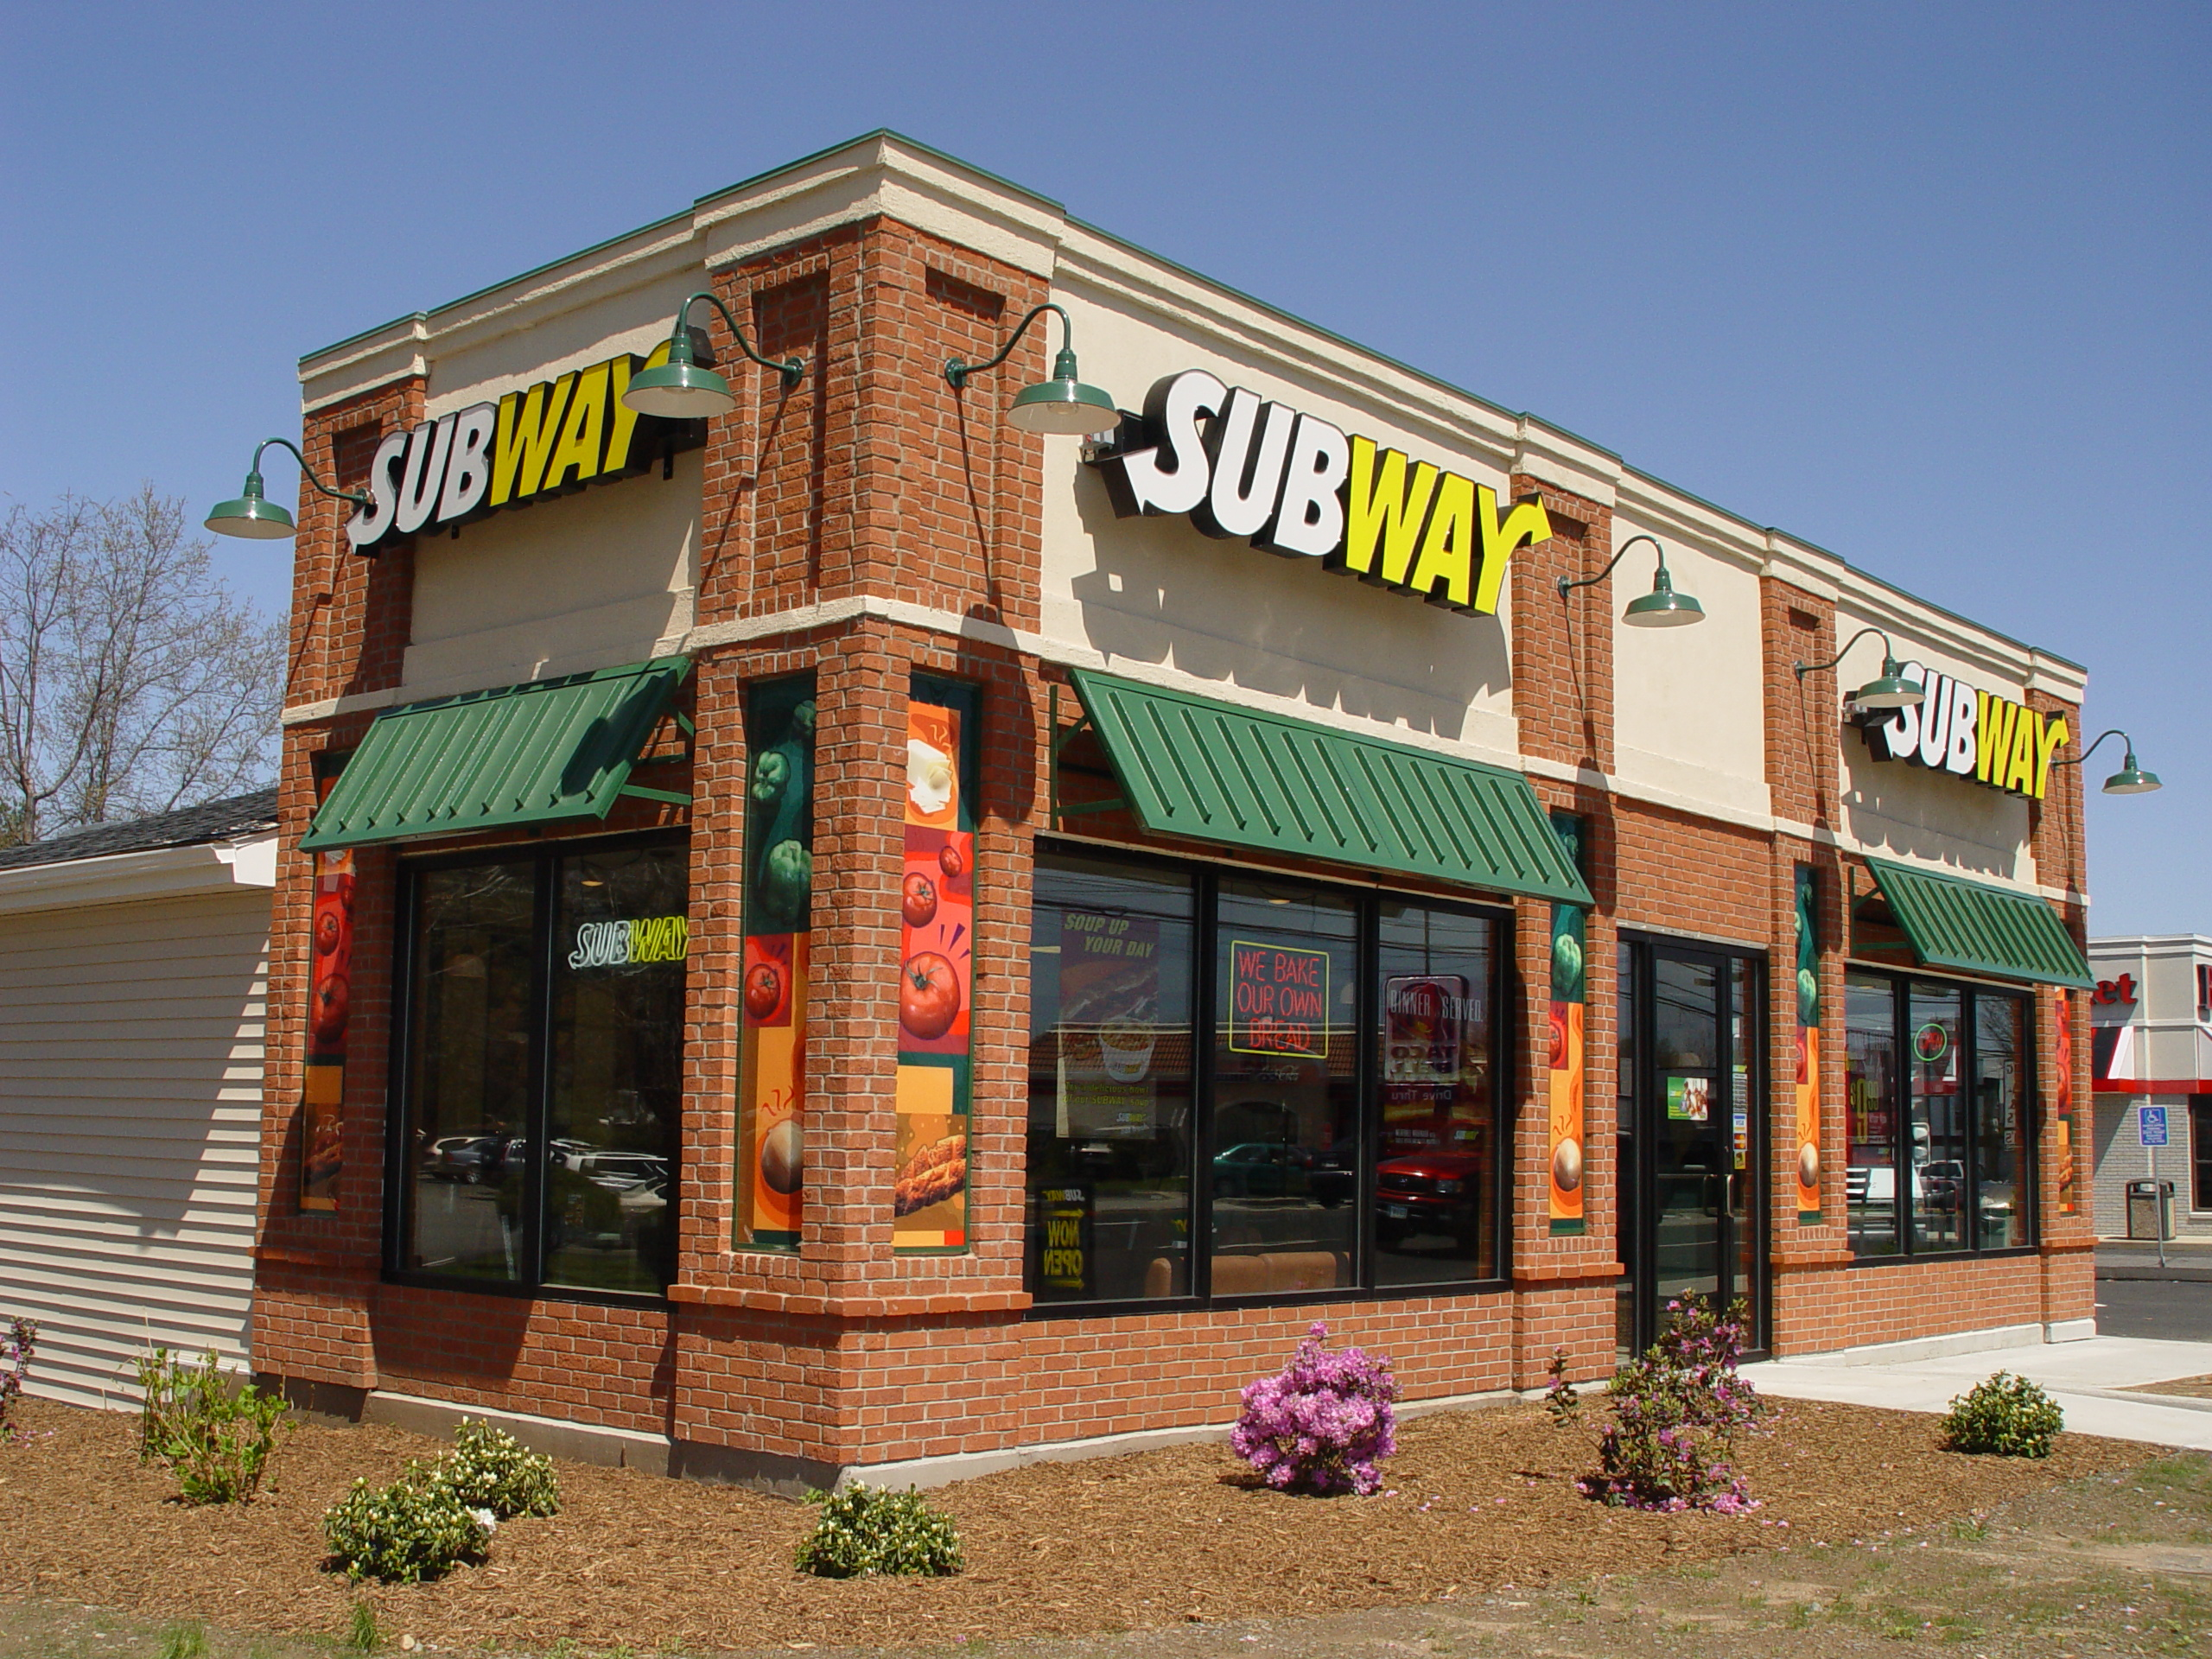 Subway, Cumberland MD